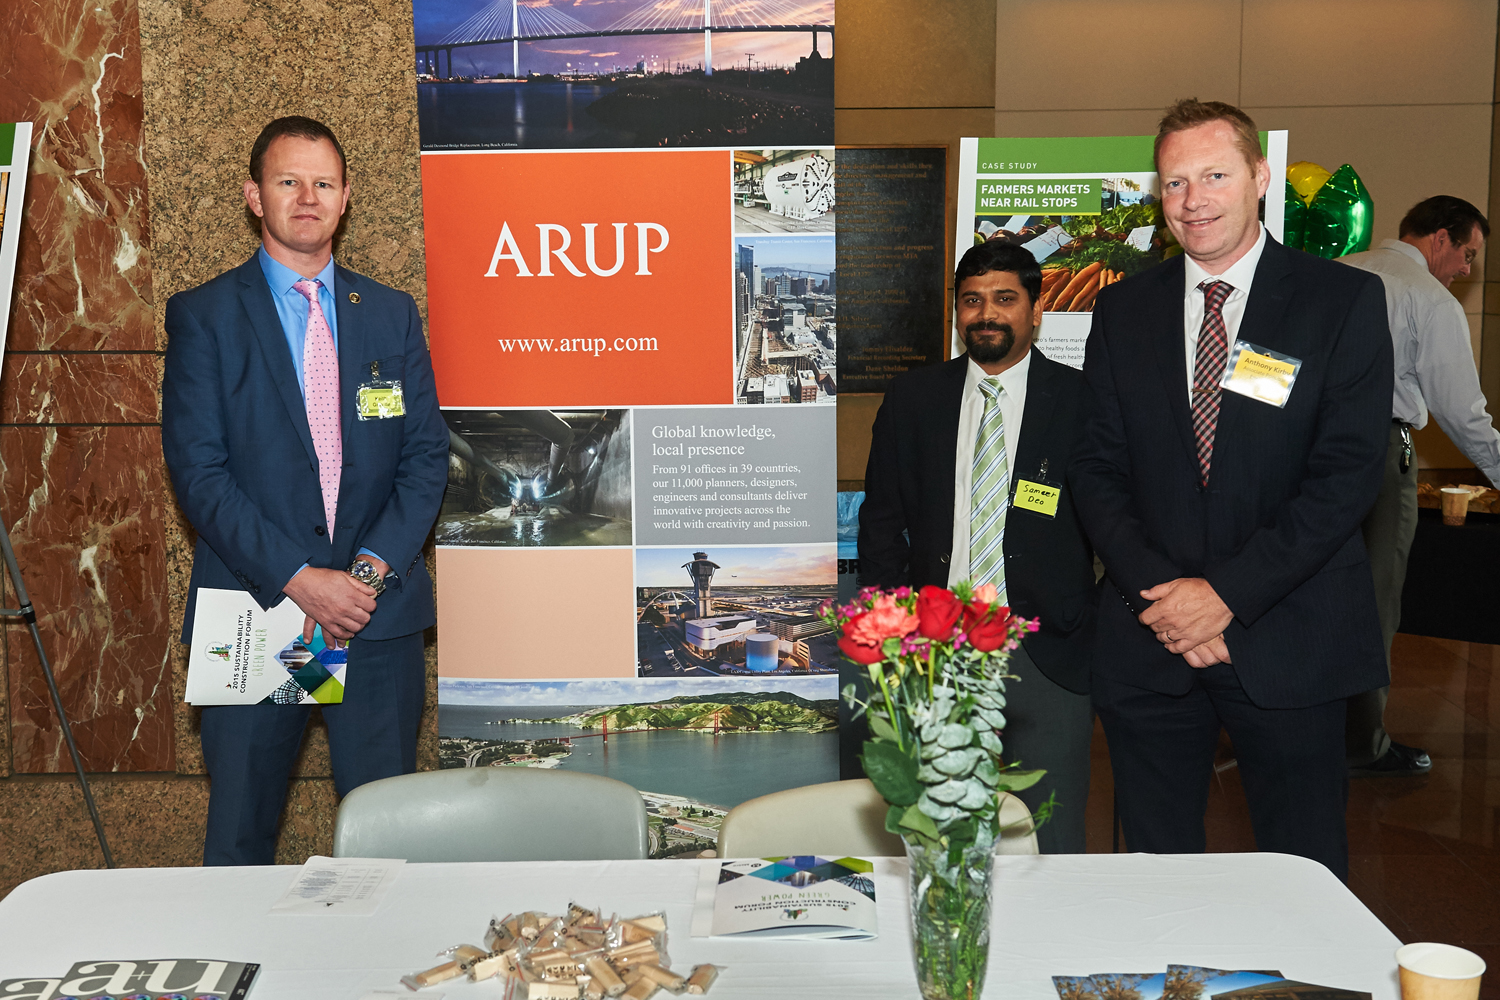 METRO LA Sustainability Construction Displays ARUP.jpg